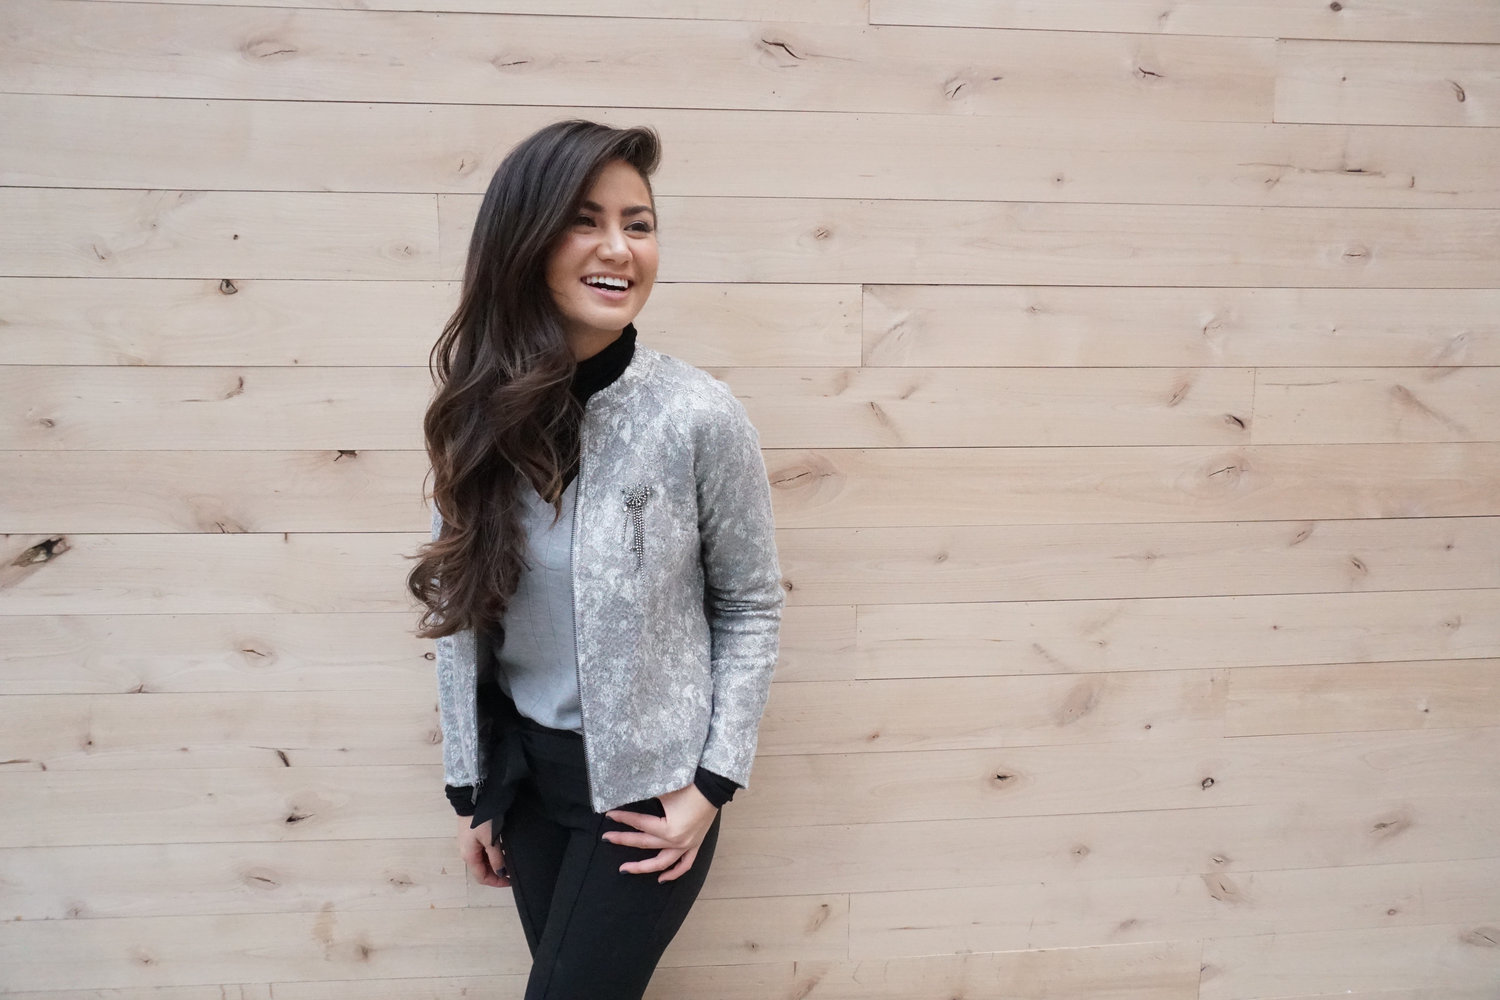 Topics tagged under withlovecaila on bachandbachettefans.net Banana+Republic+Gray+Sweater+Caila+Quinn?format=1500w